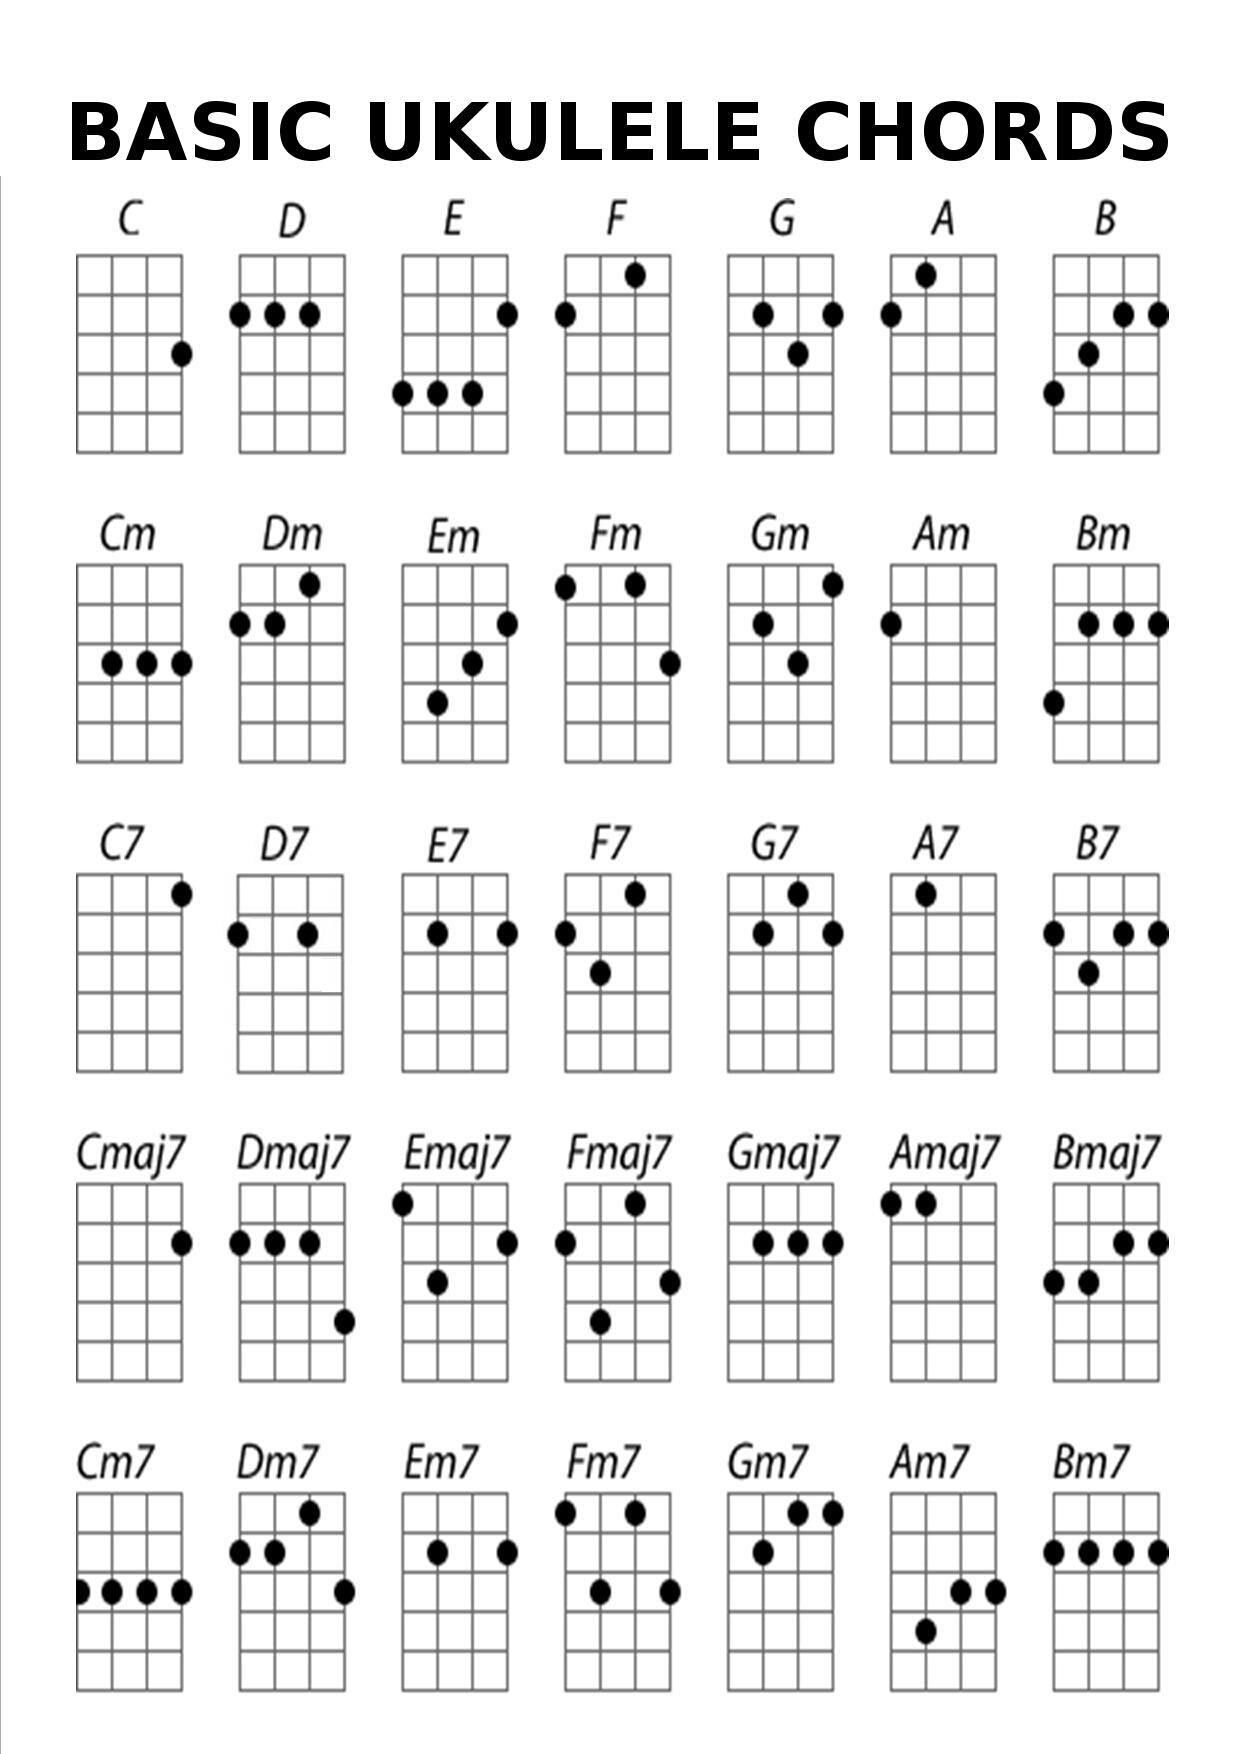 Torete Guitar Chords And